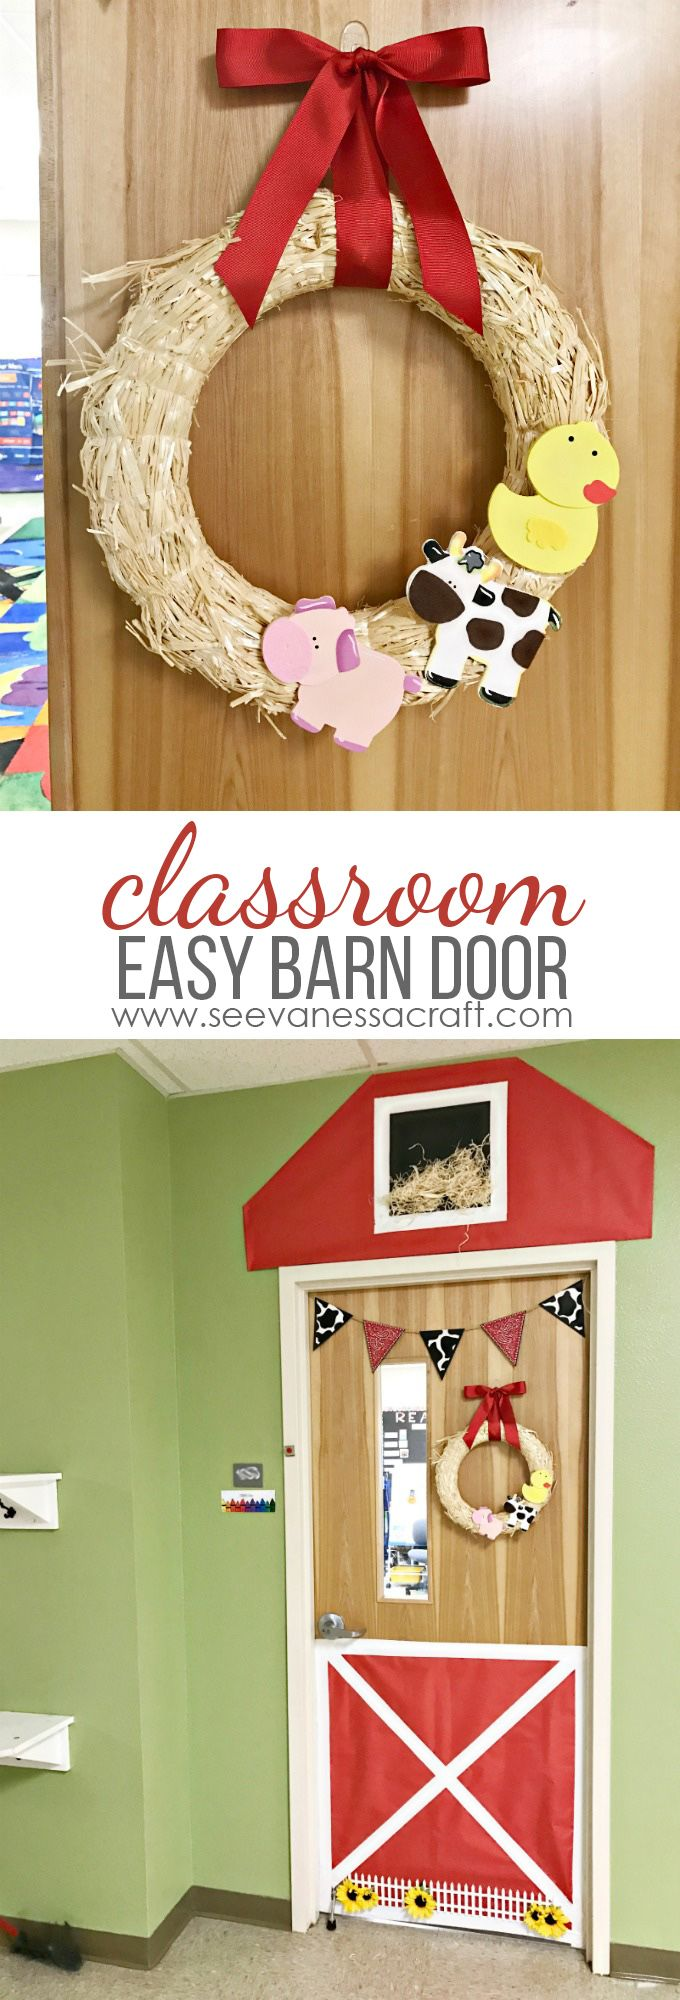 Barn and farm animal coloring pages - Craft Easy Classroom Barn Door And Farm Animal Wreath